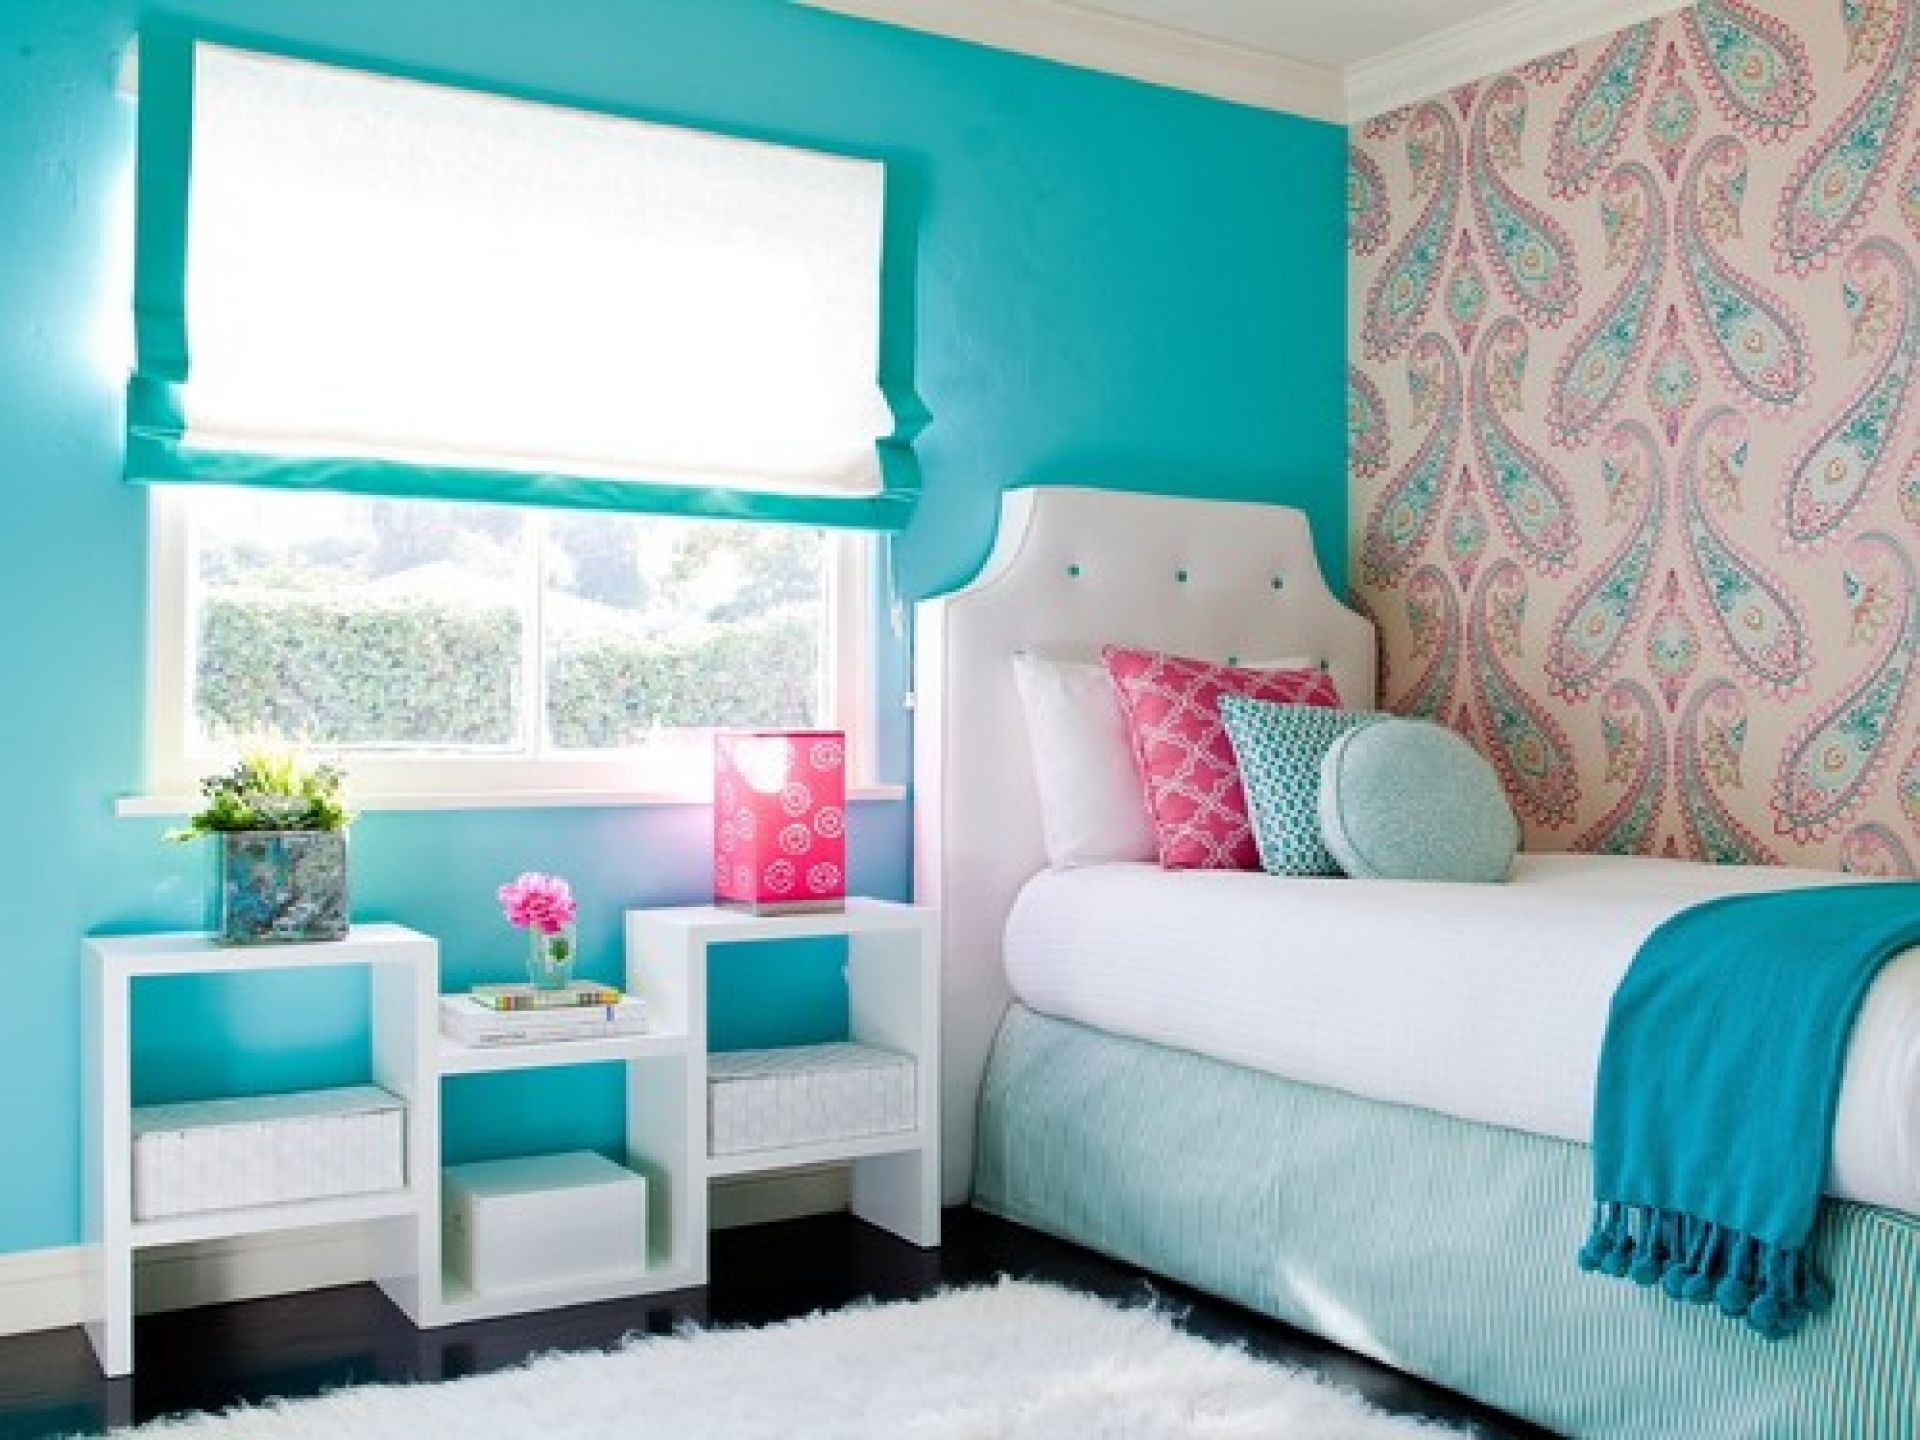 Simple design comfy room colors teenage girl bedroom wall for Bedroom theme ideas for teenage girls